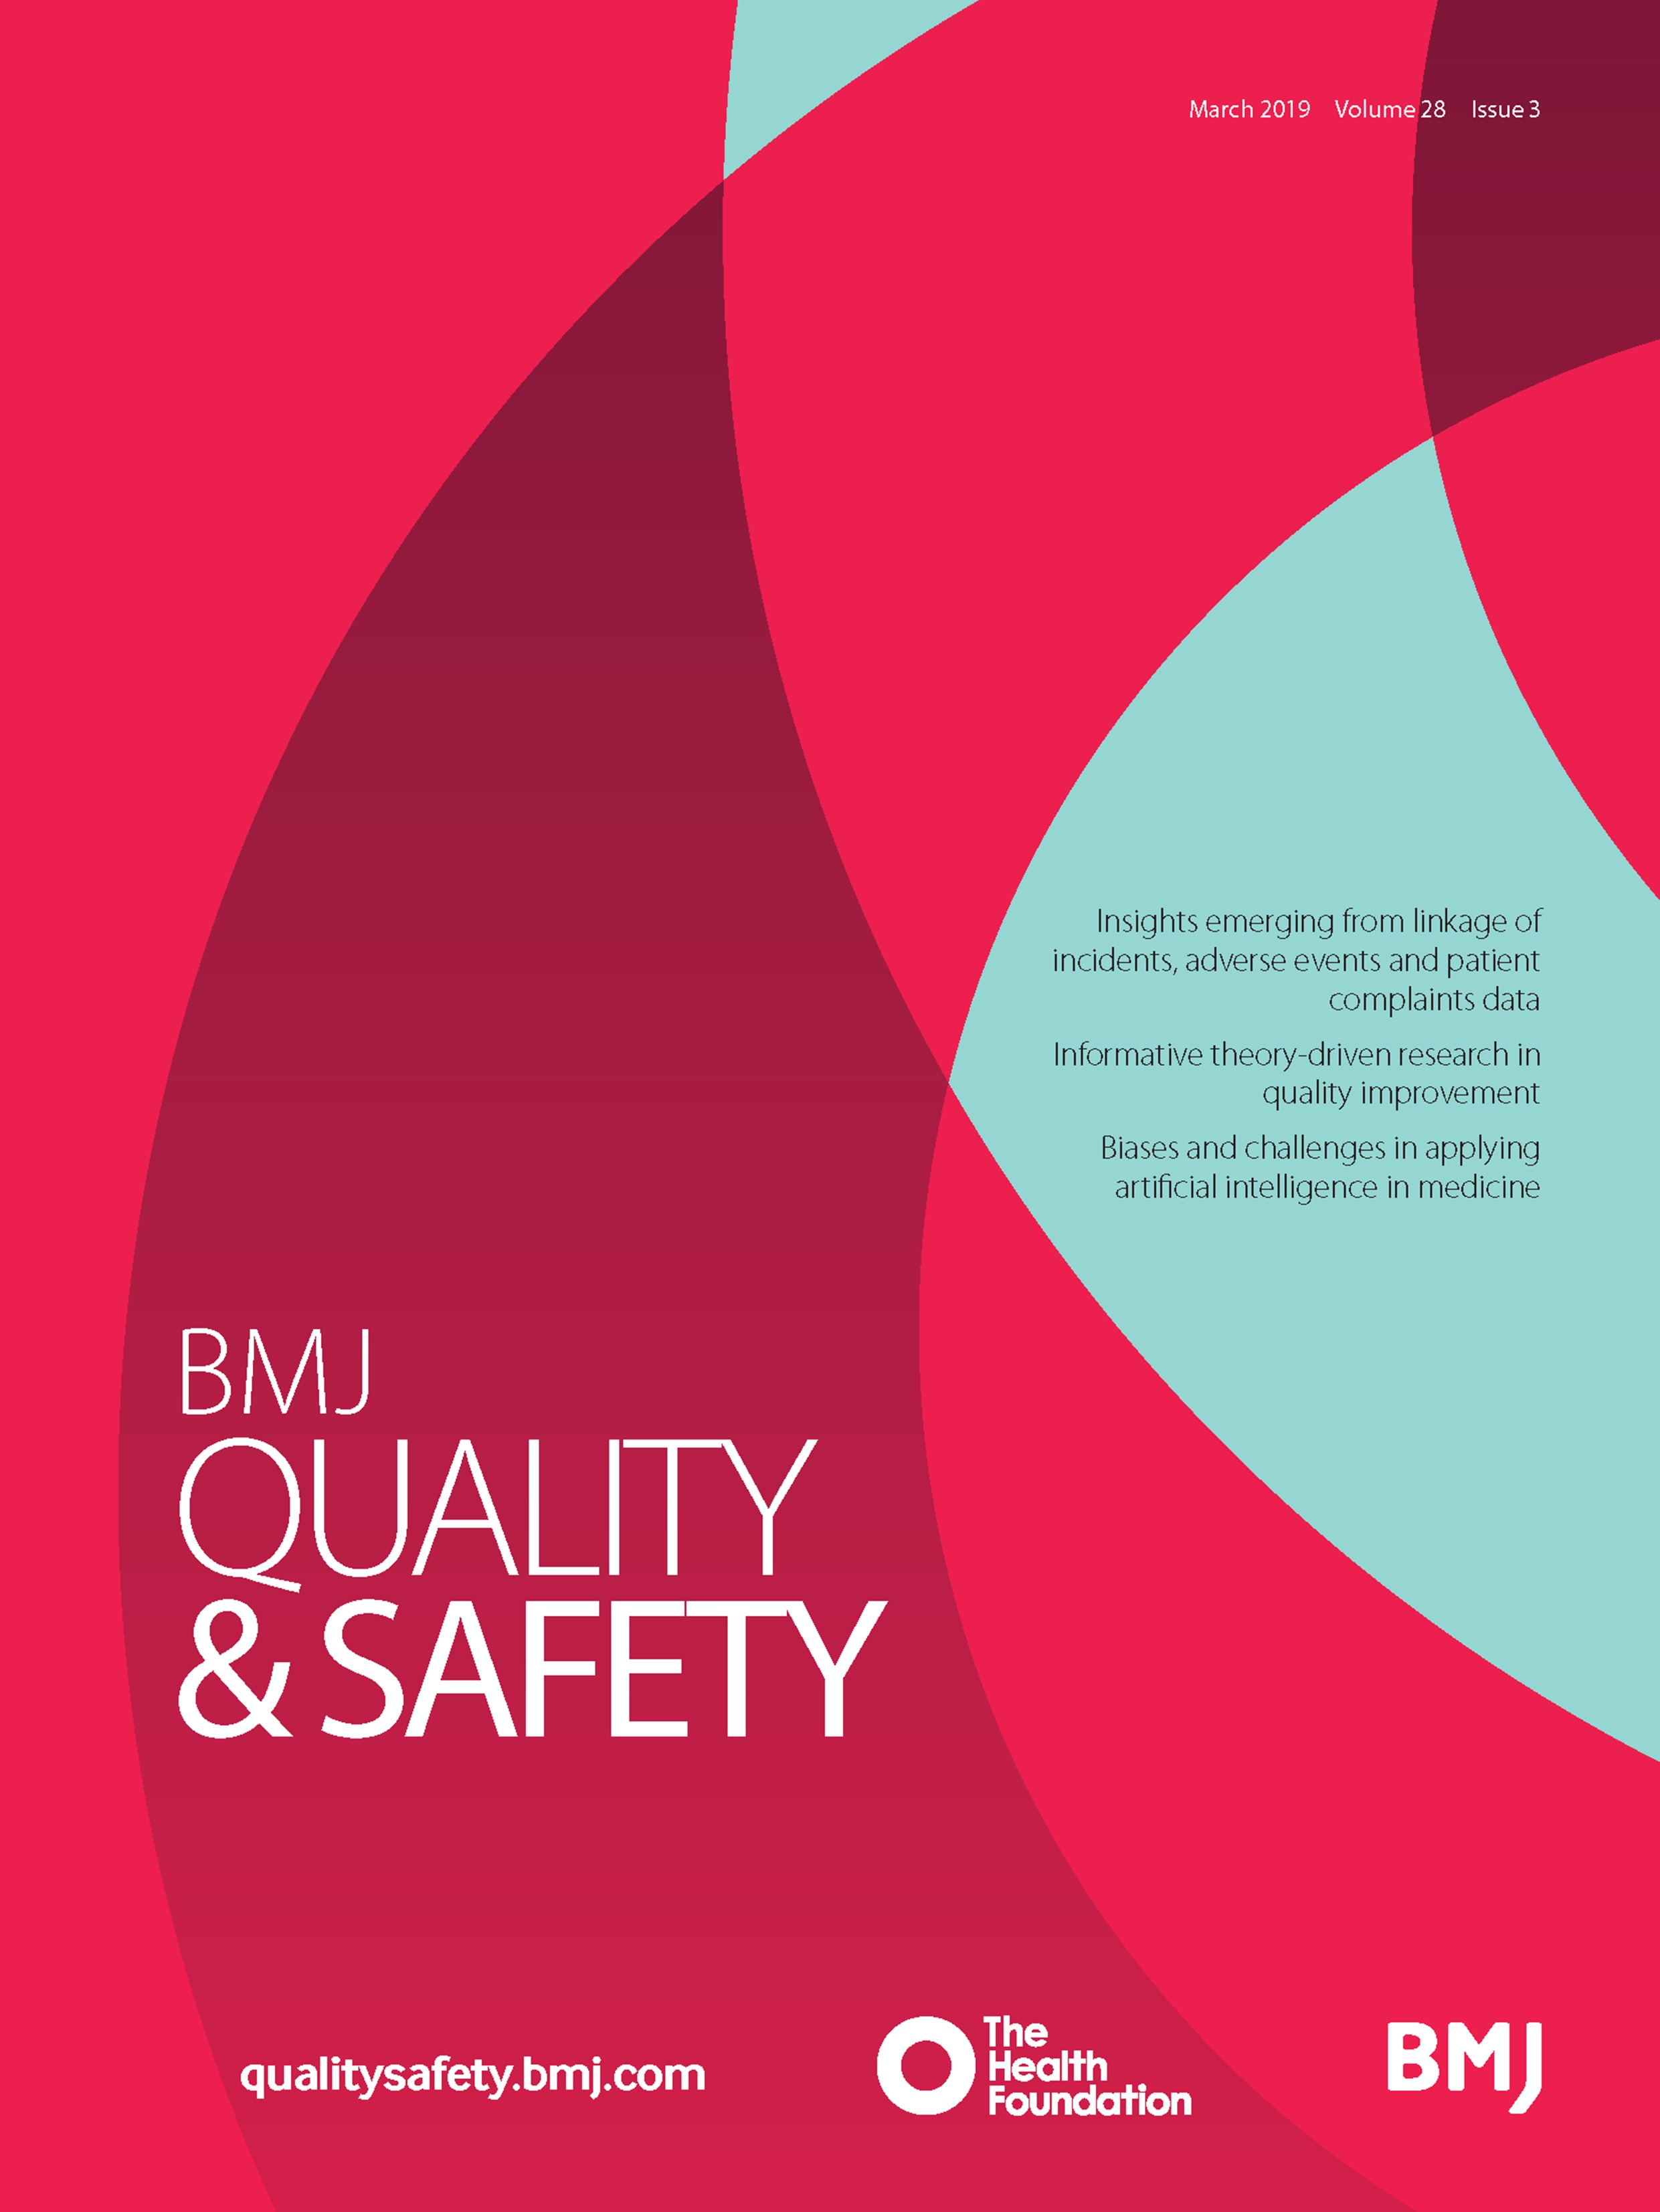 Artificial intelligence, bias and clinical safety | BMJ Quality & Safety